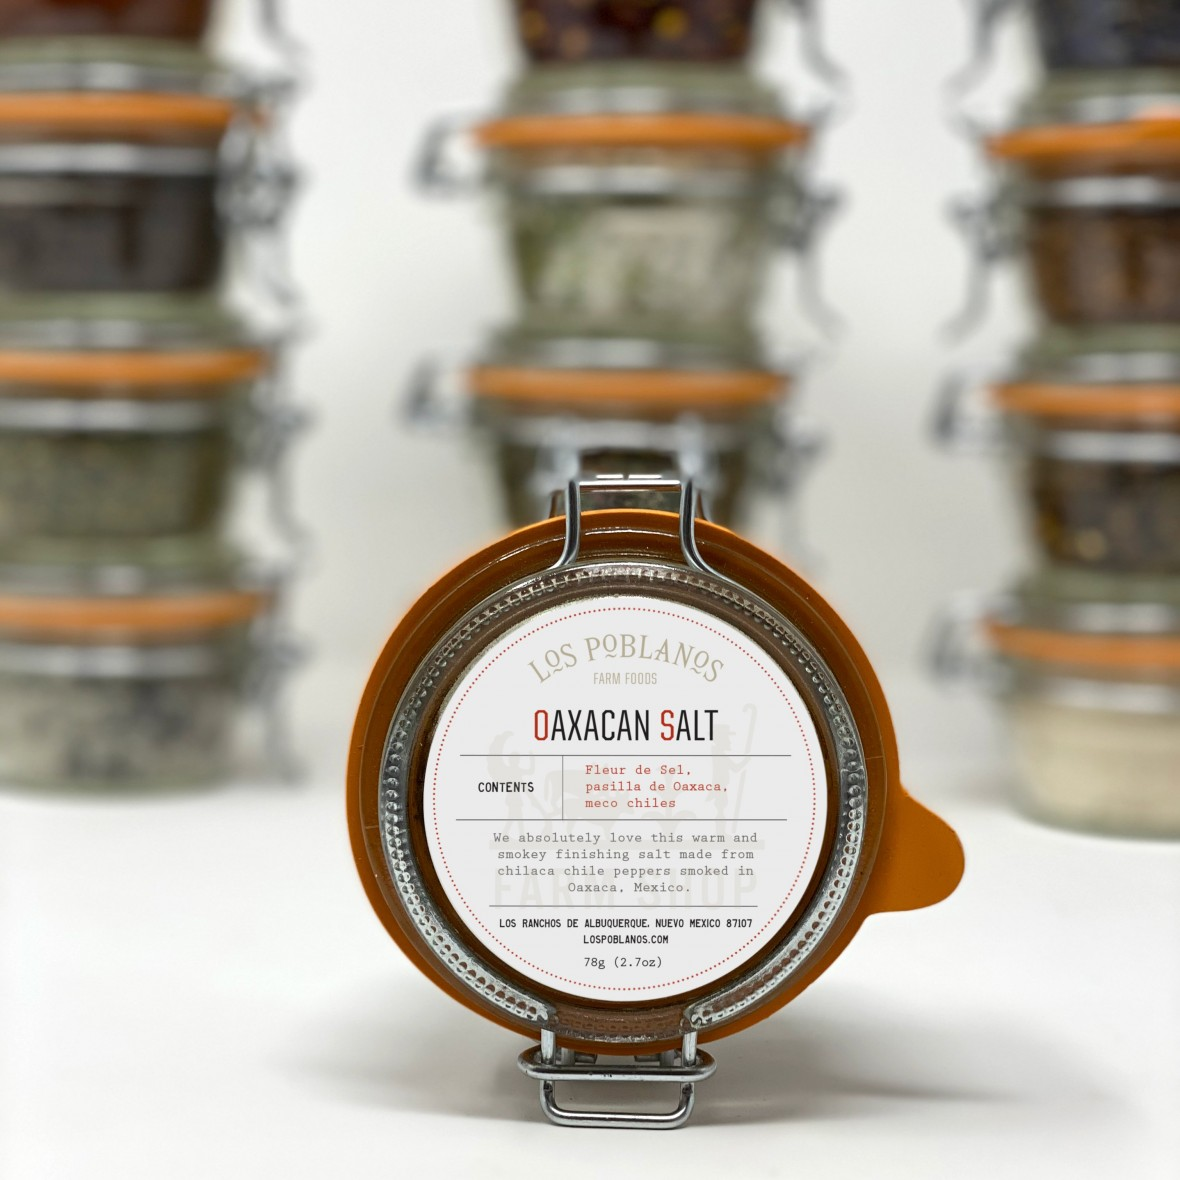 container of Oaxacan salt